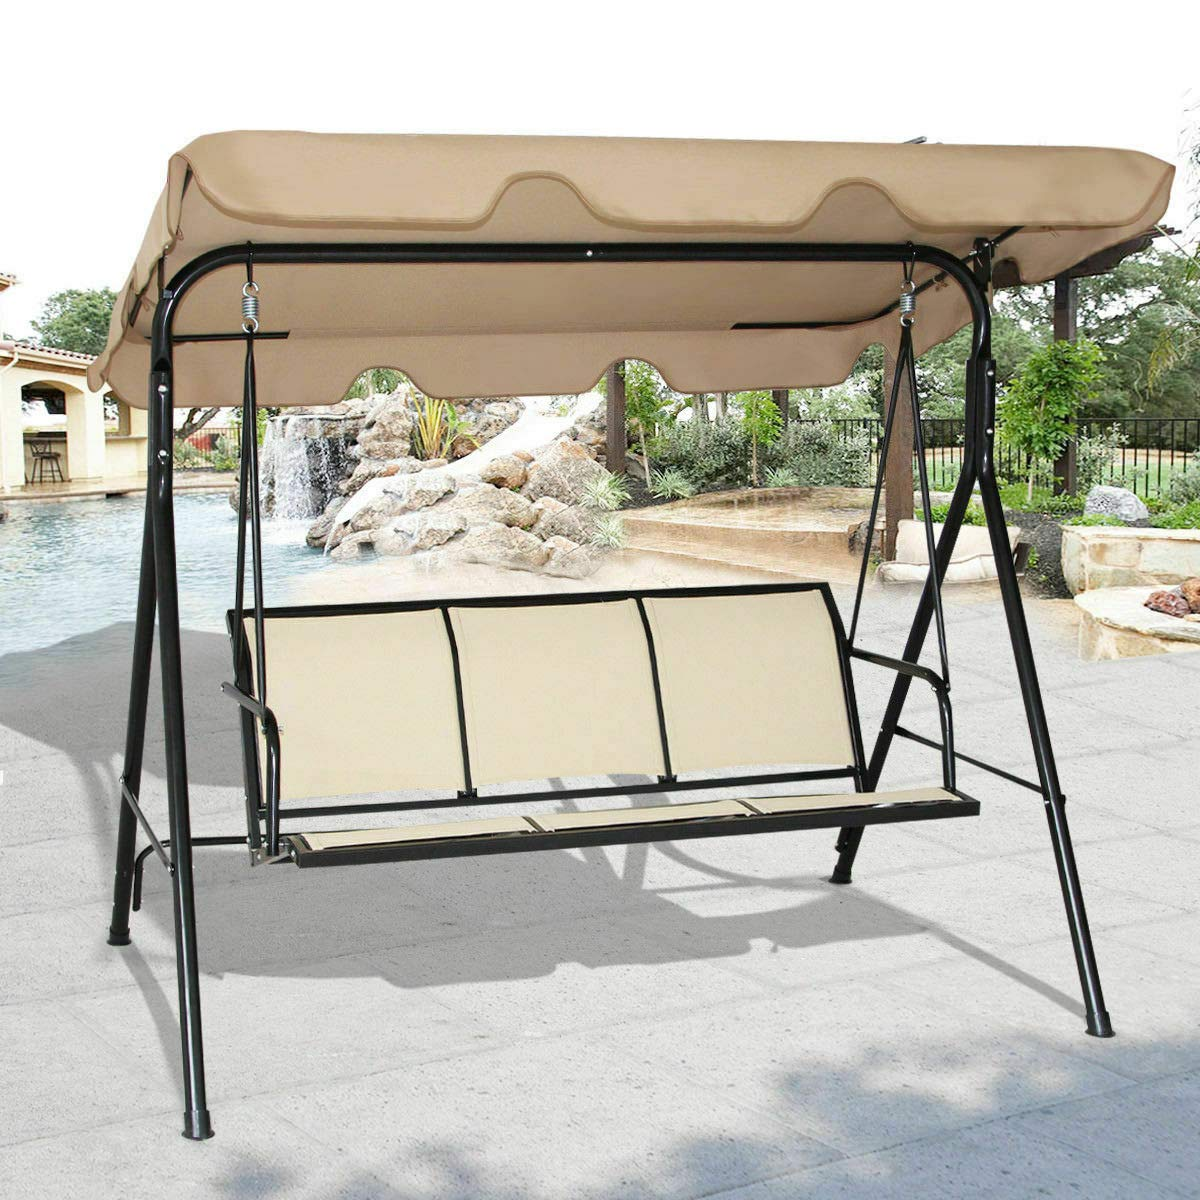 Canopy Swing Chair Patio Hammock Outdoor Awning Yard Furniture Steel 3 Persons